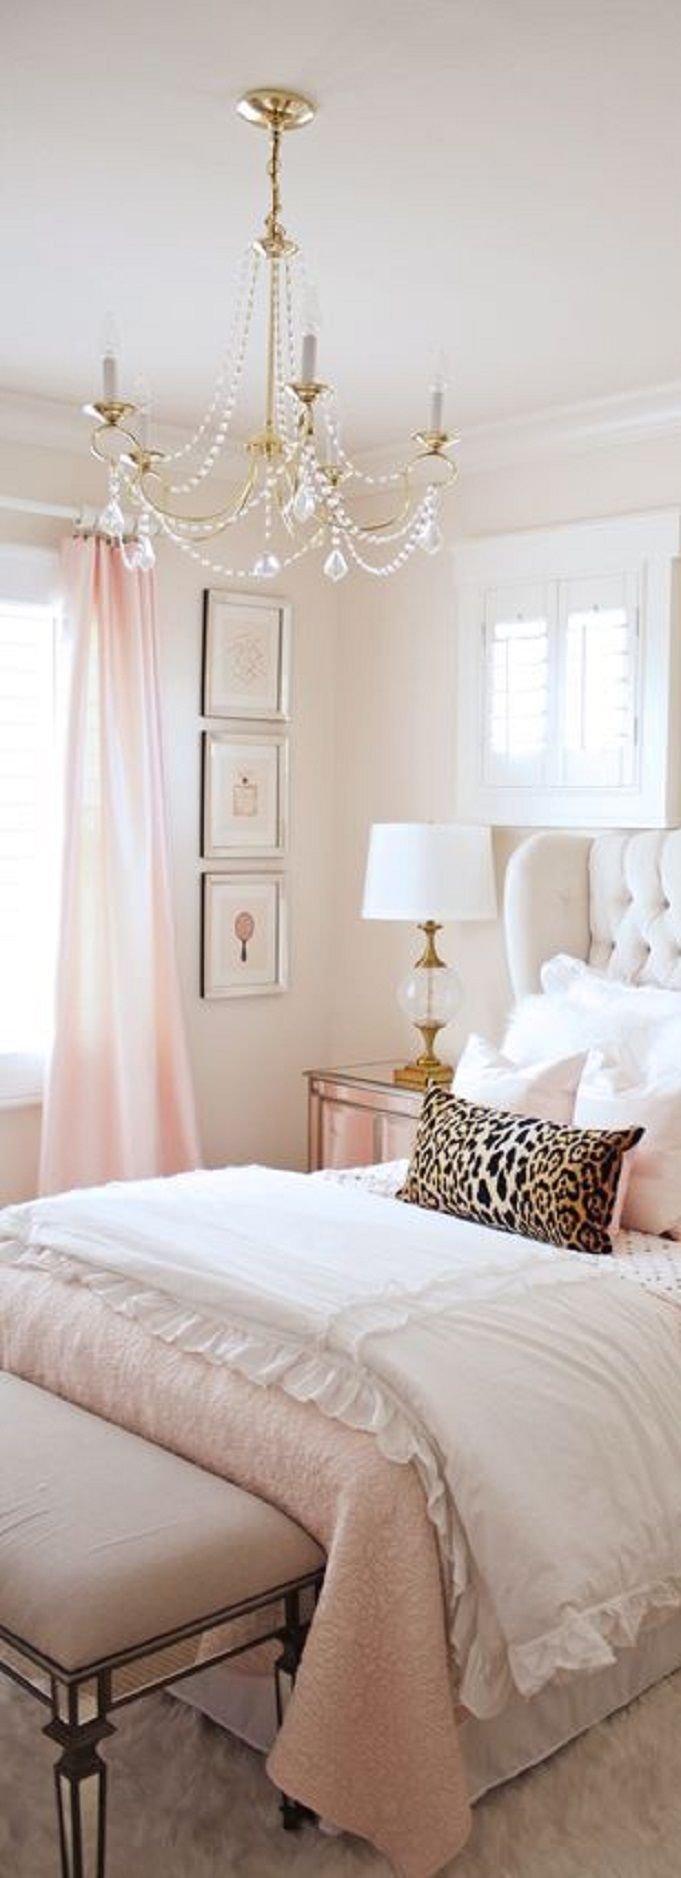 Best 20 Pastel Bedroom Ideas On Pinterest Pastel Girls With Pictures